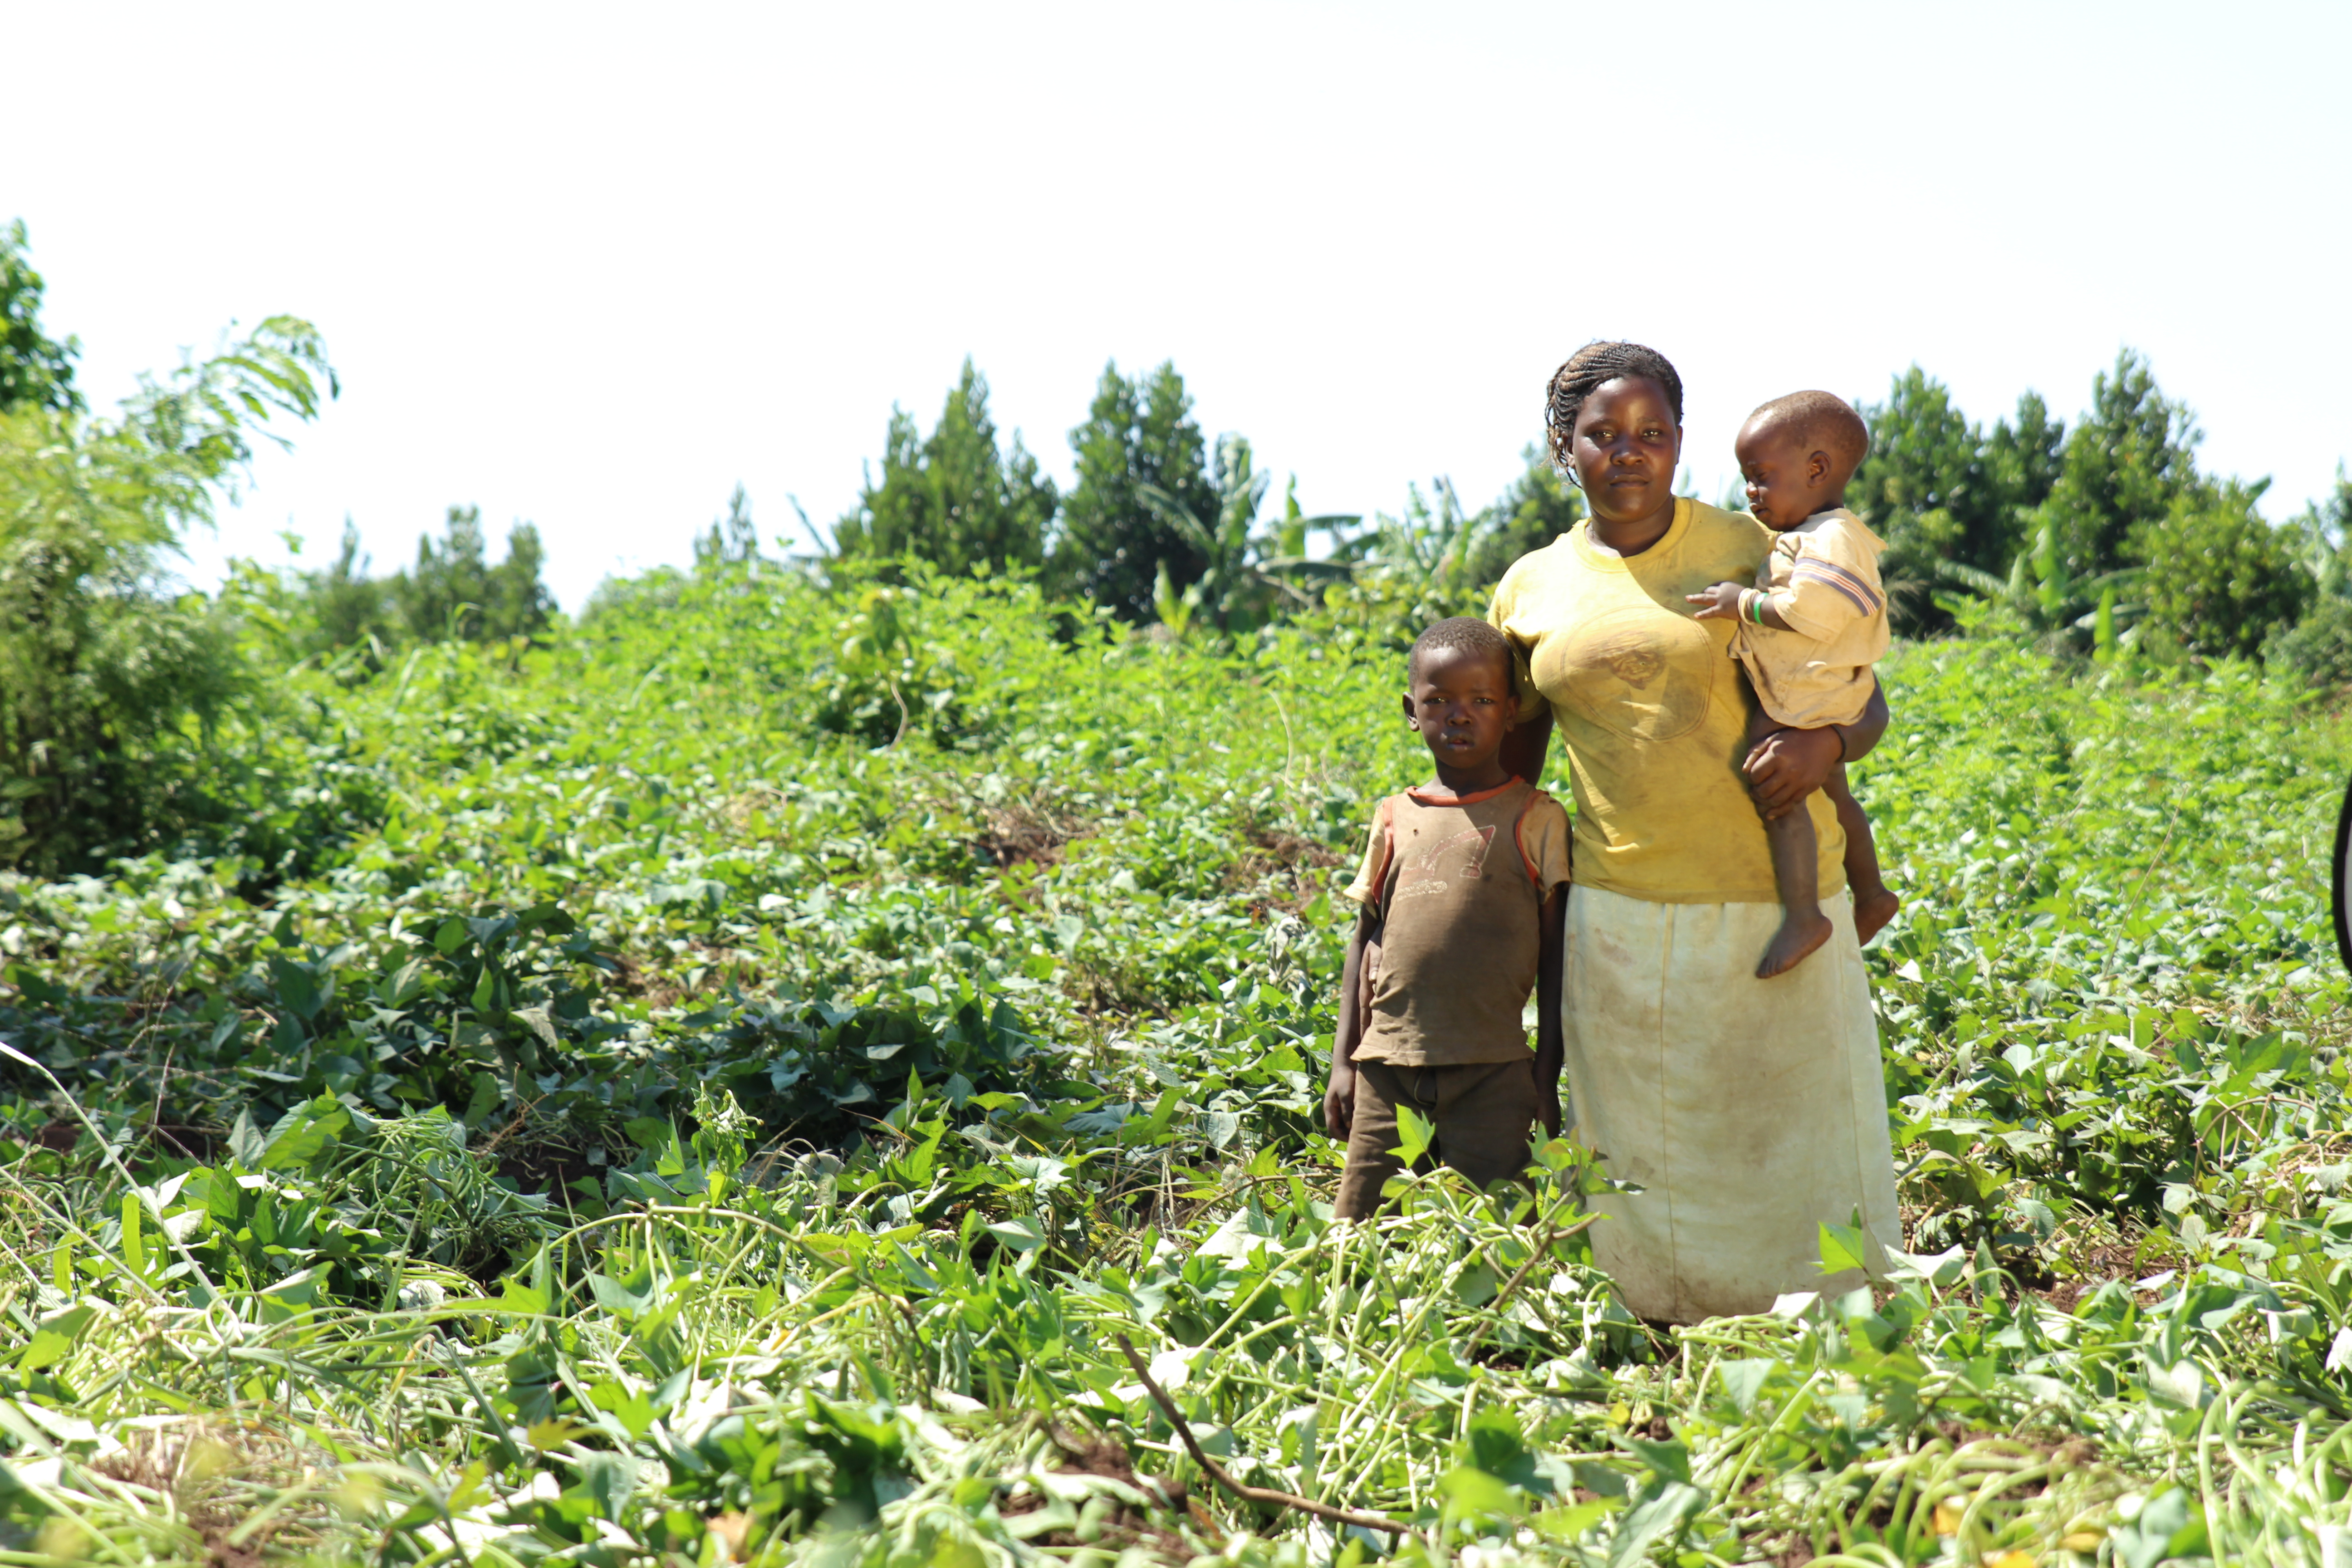 In a field of green plants, a black woman with her hair tied back, wearing a yellow shirt and a long, cream-colored skirt, holds a black baby in her left arm, resting her right hand on the back of a black boy, who appears to be about 7 years old. They are looking at the camera.